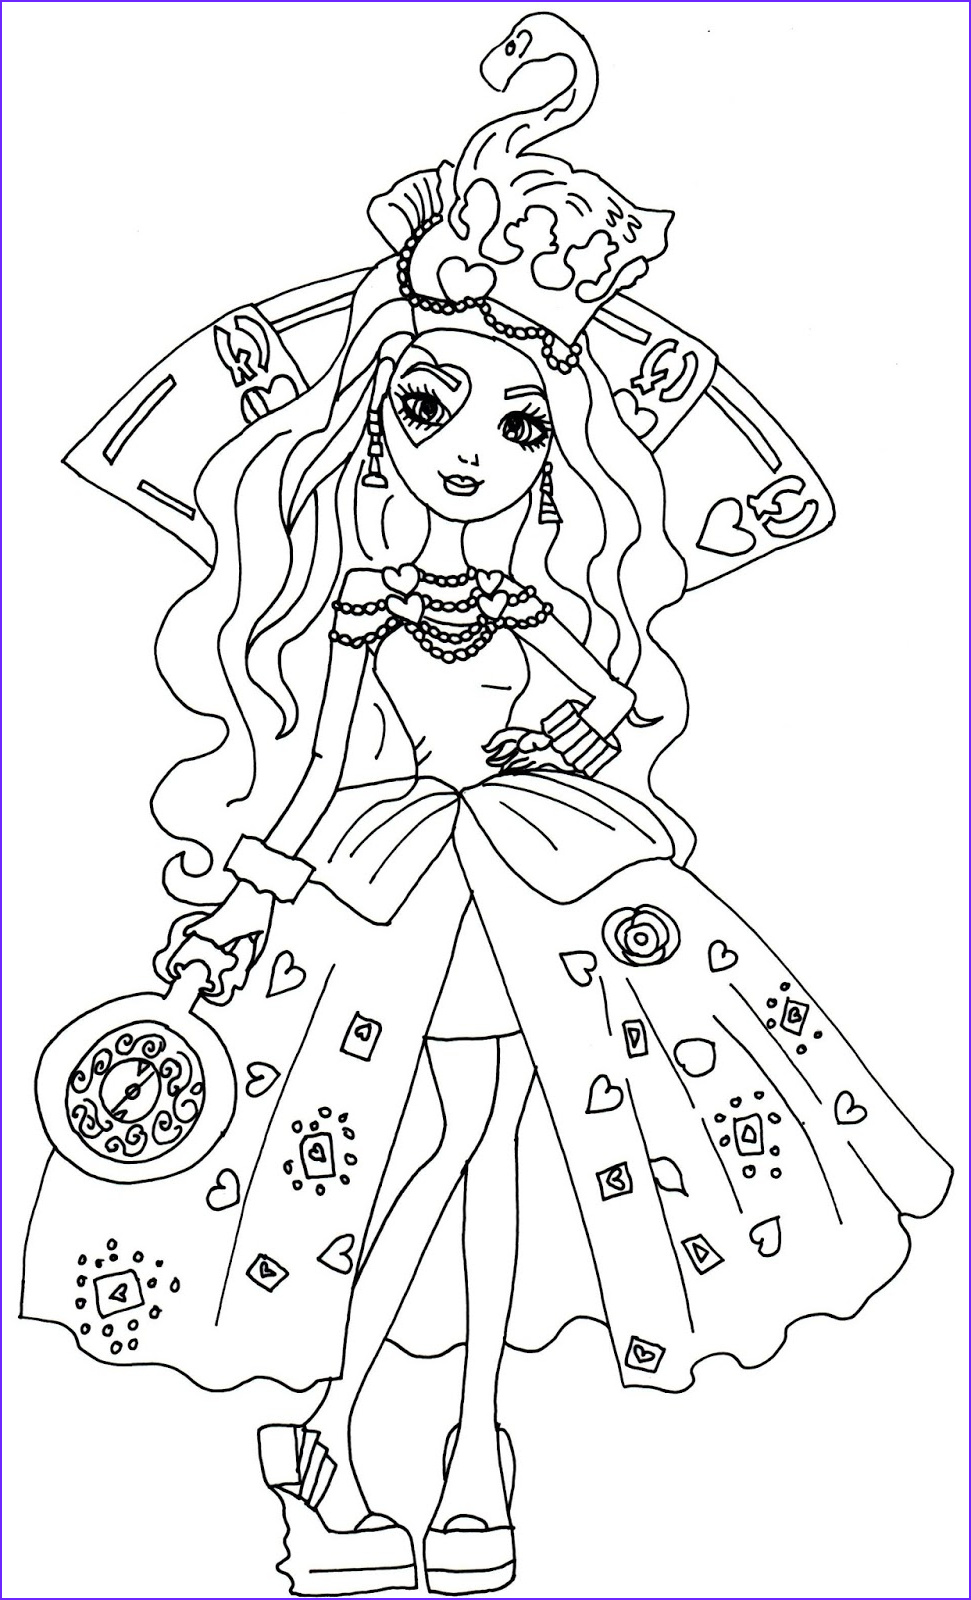 Best Coloring Book for toddlers Awesome Stock Ever after High Coloring Pages Best Coloring Pages for Kids